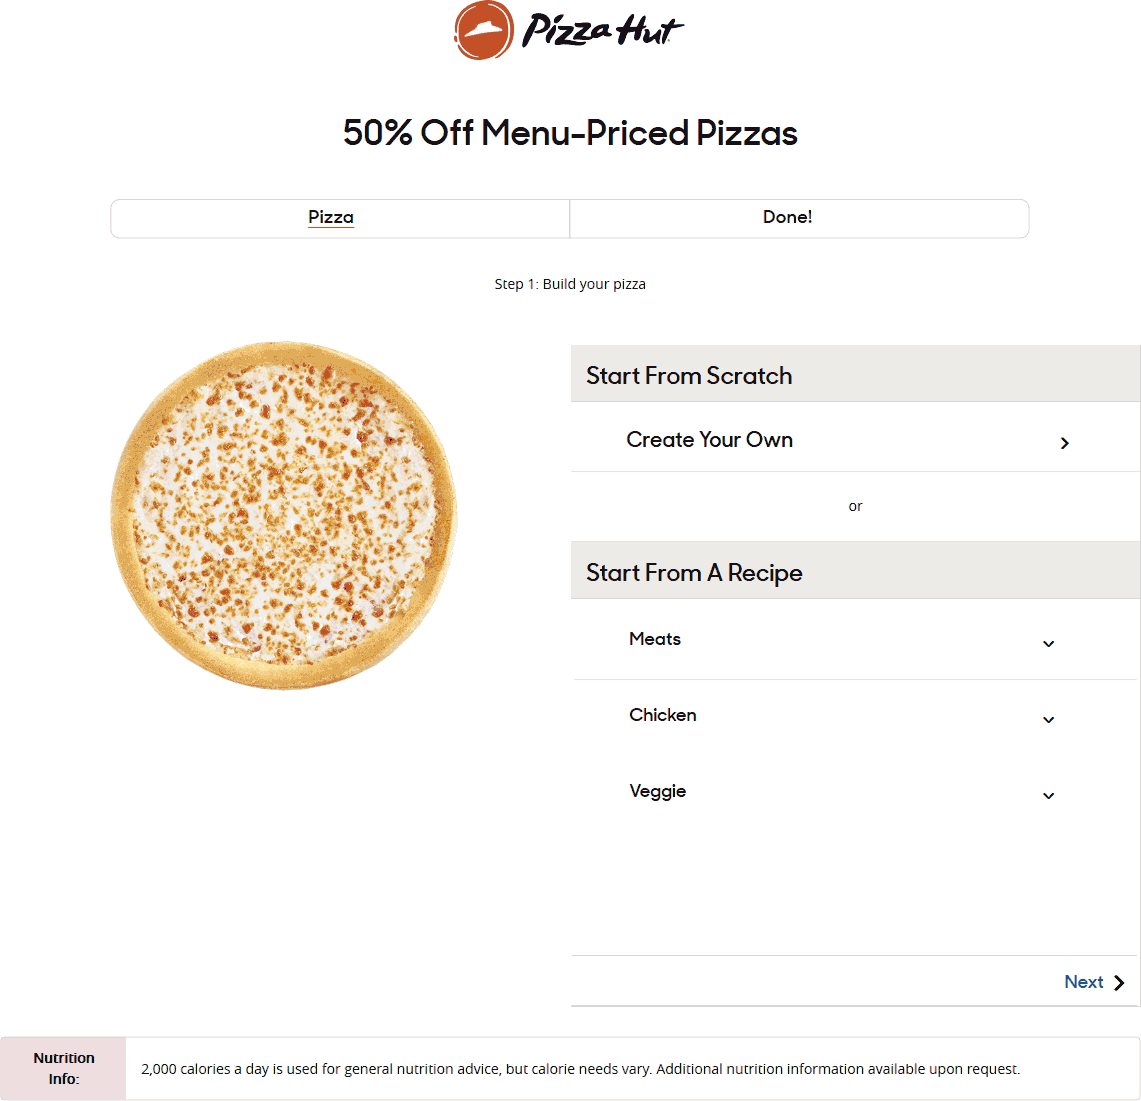 Pizza Hut Coupon January 2020 50% off pizzas at Pizza Hut via promo code FIFTYOFFNY